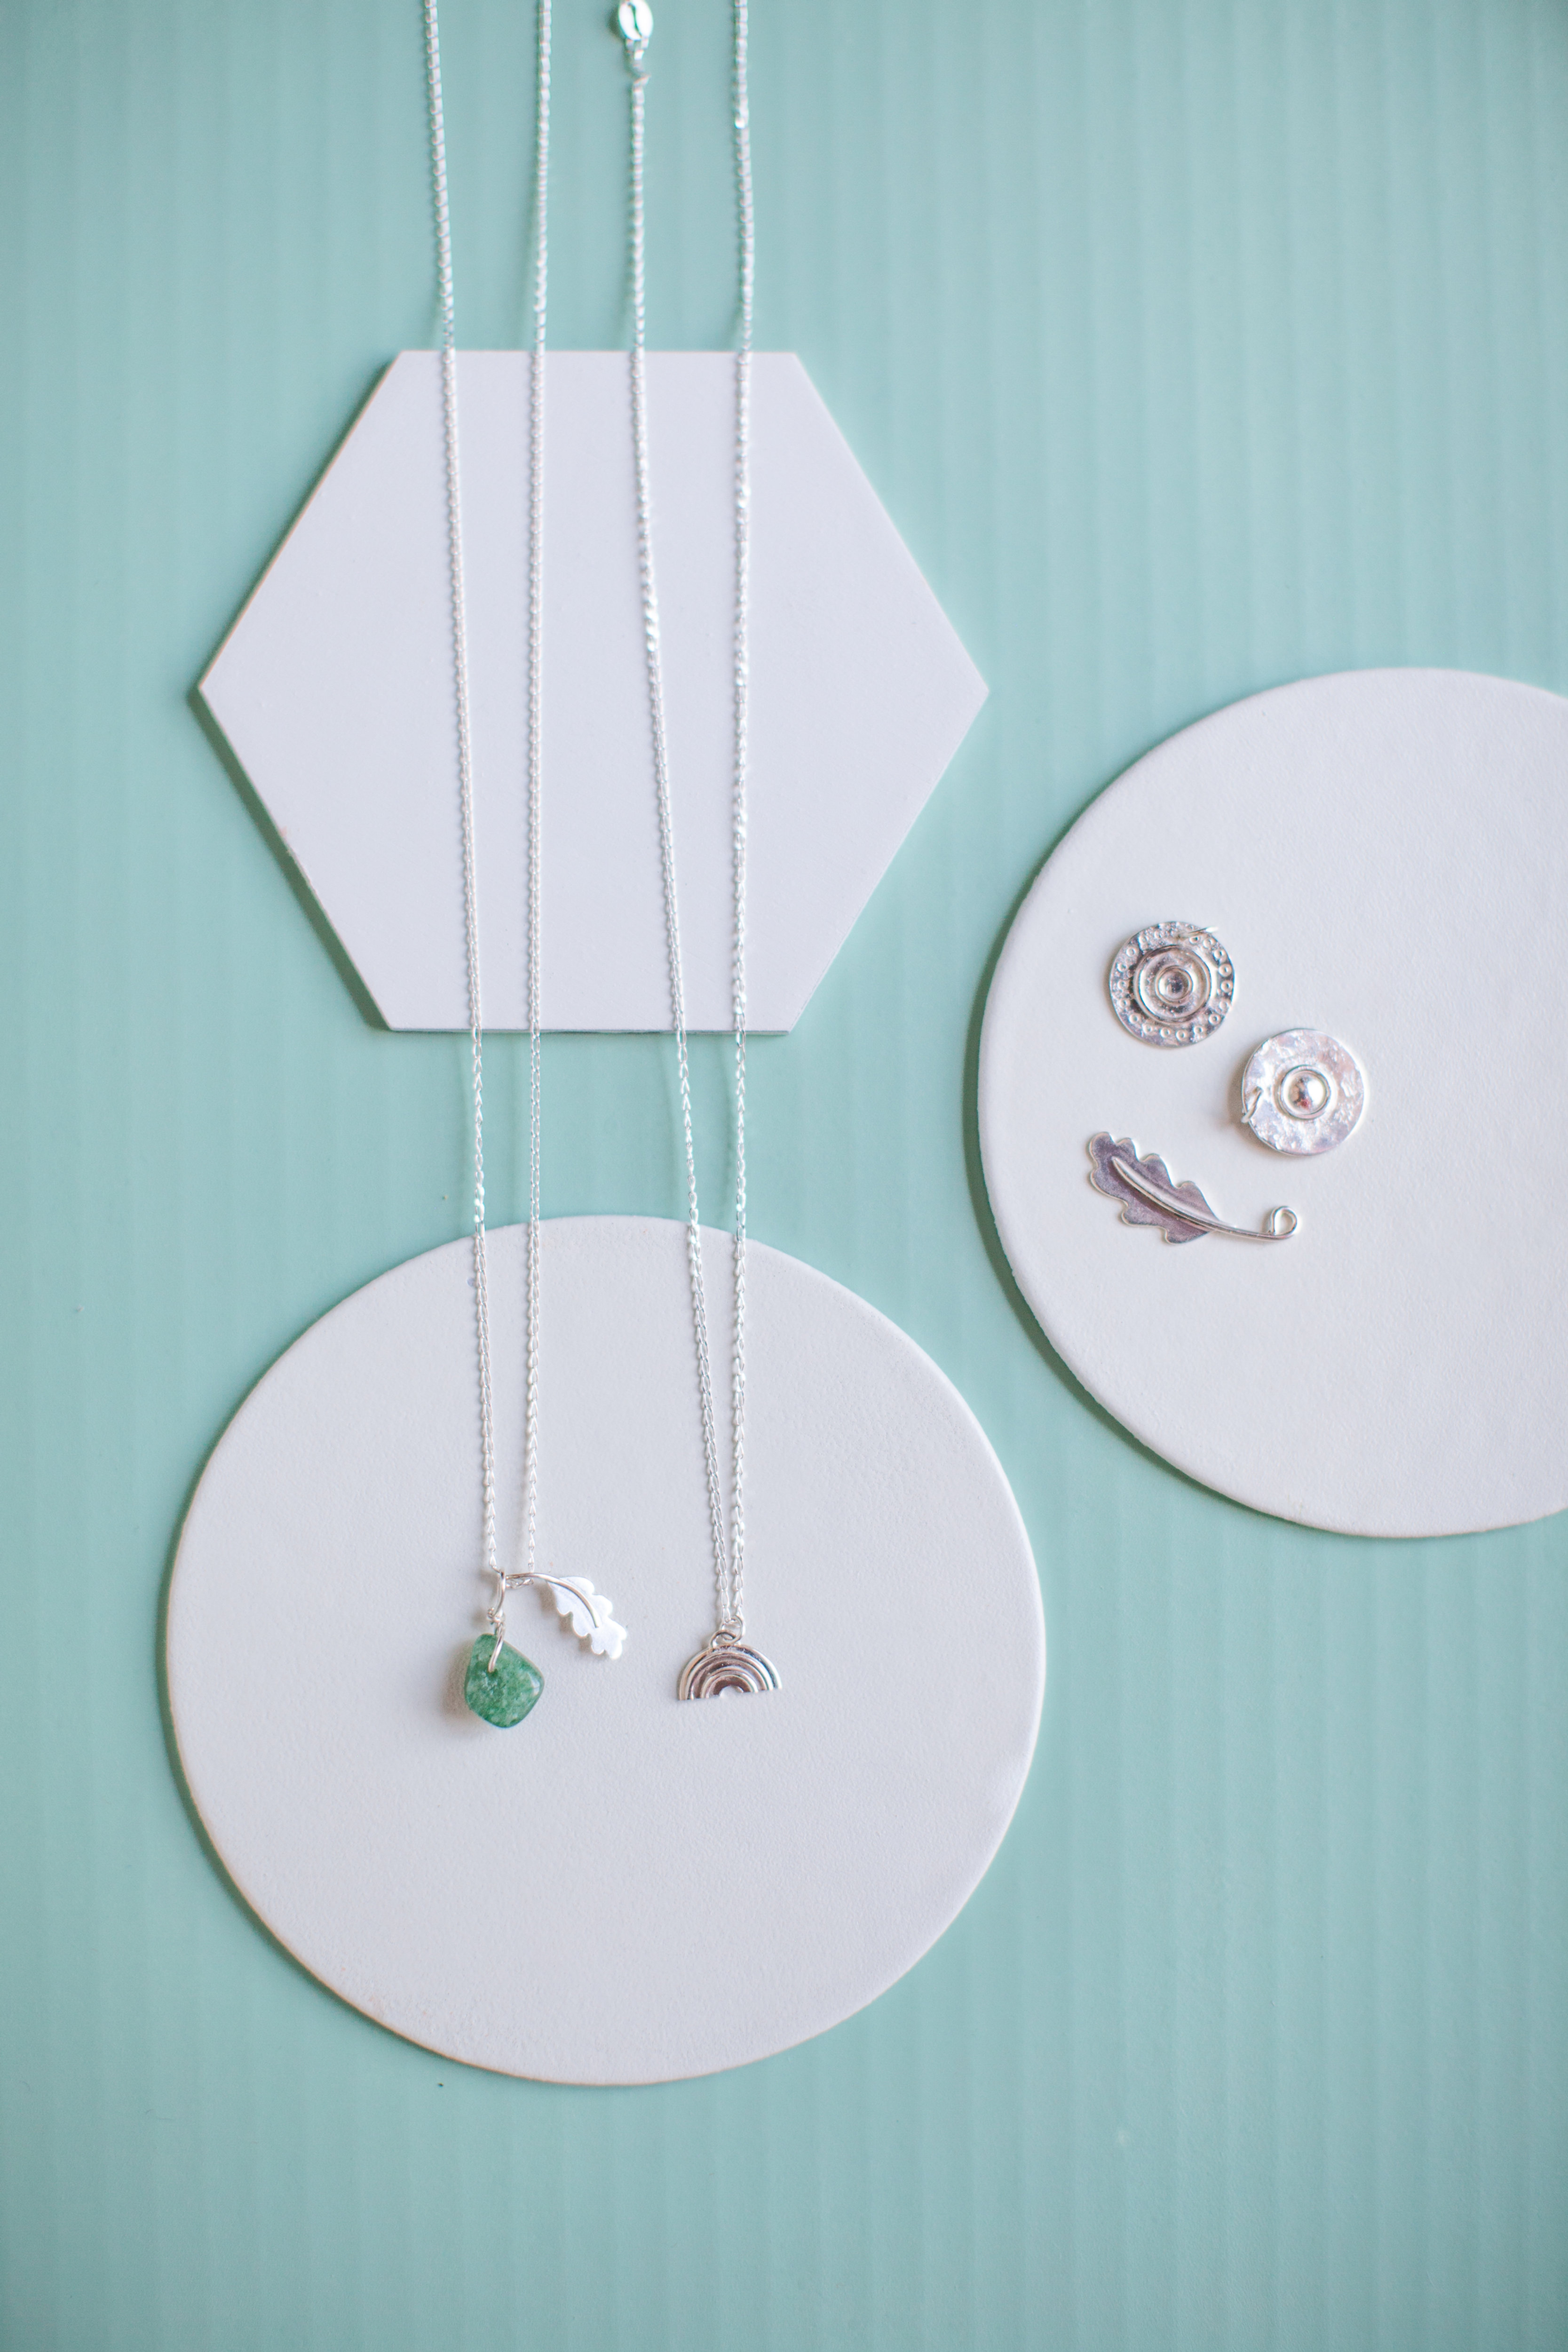 Sterling Silver Necklace with a choice of charms